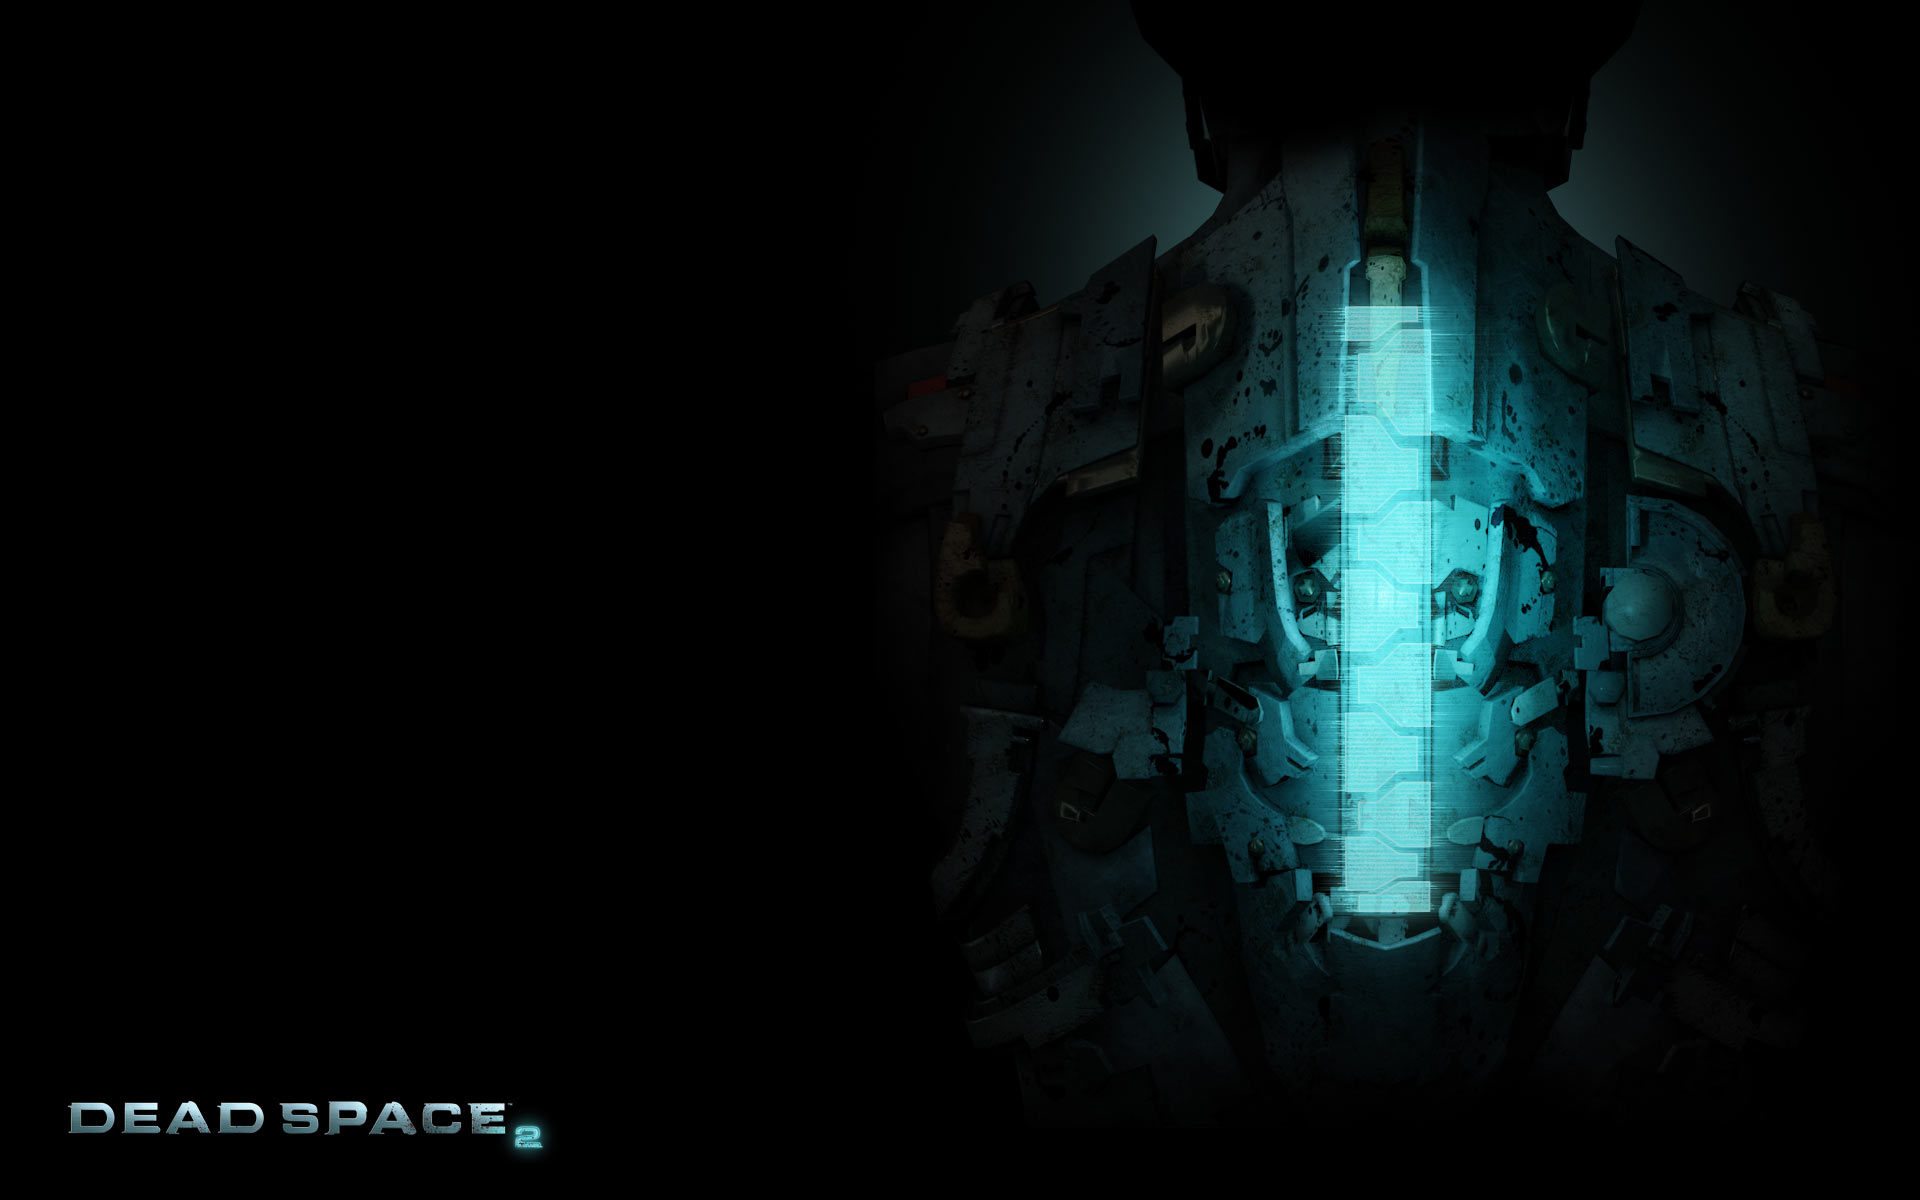 Dead Space HD Wallpapers and Backgrounds